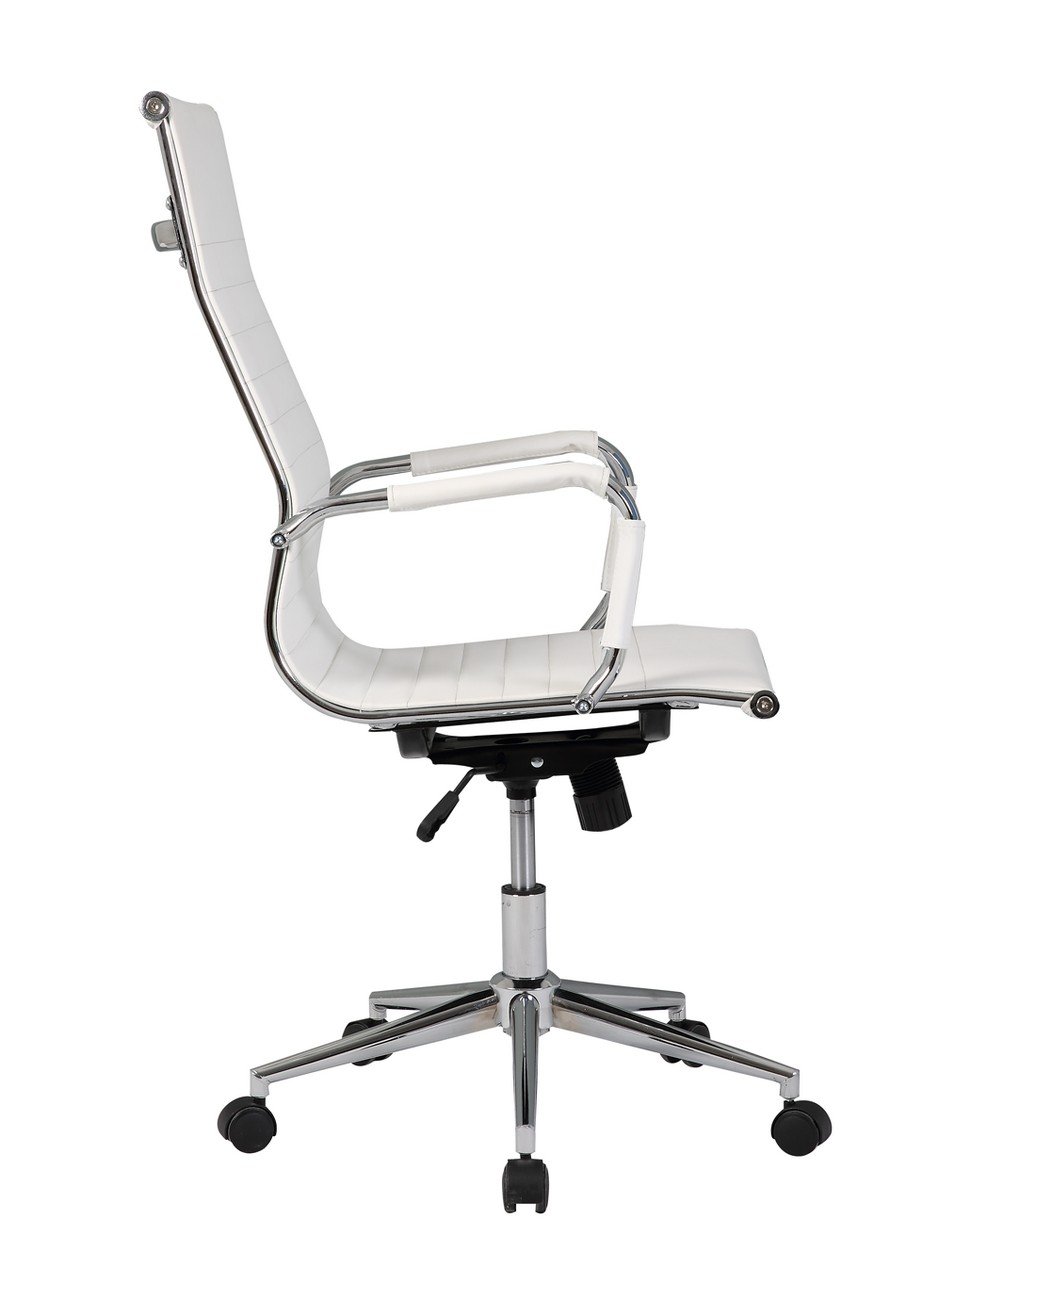 high quality office chairs ergonomic chair cover rental omaha ribbed pu leather back executive computer